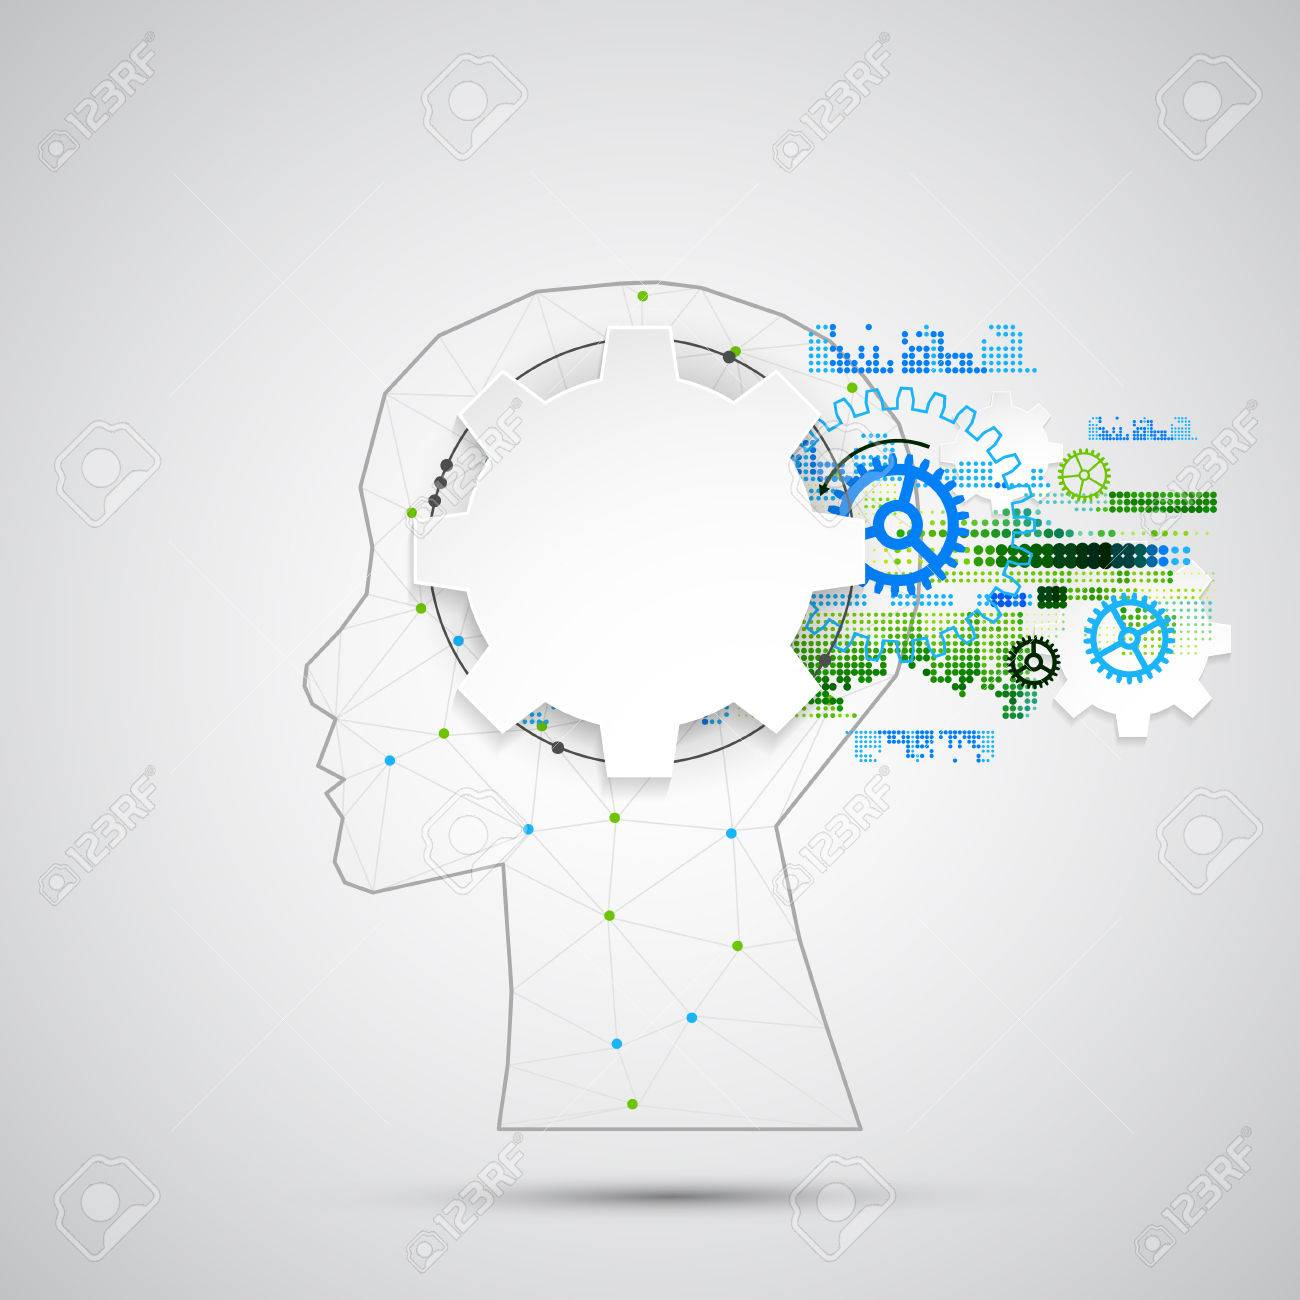 Creative brain concept background with triangular grid. Artificial Intelligence concept. Vector science illustration - 54789256